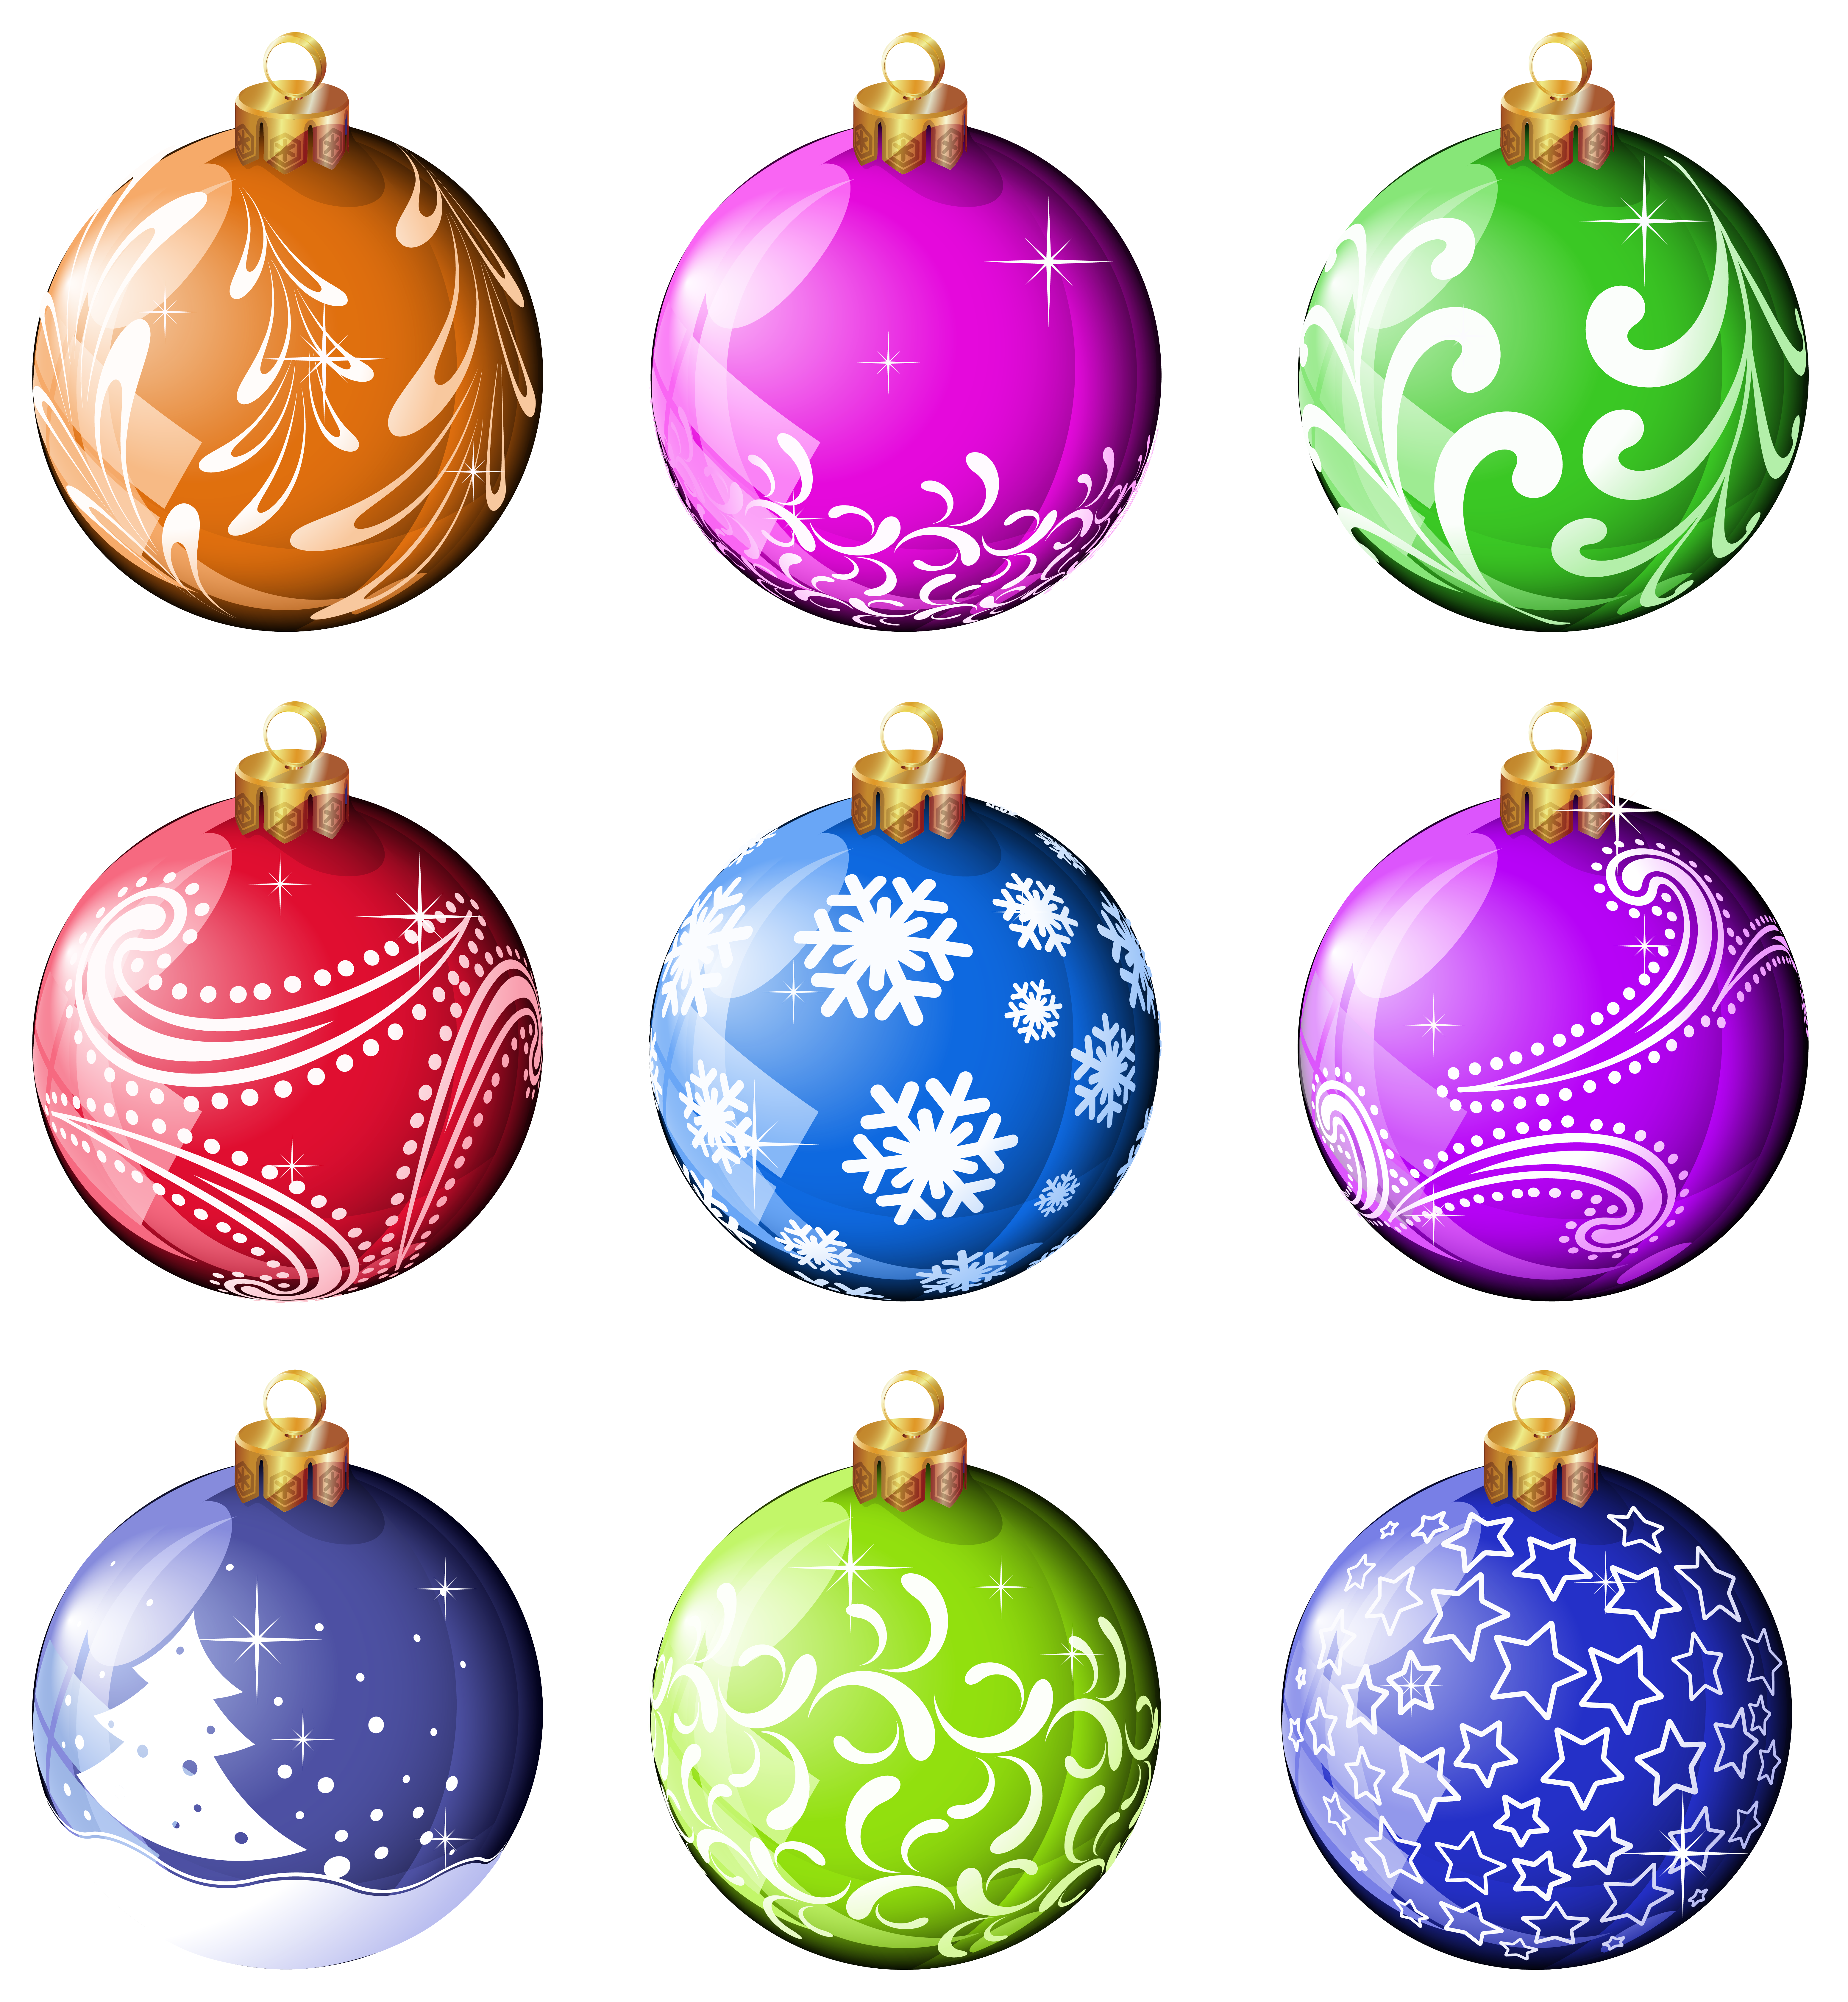 Christmas ornaments clipart png. Collection balls gallery view